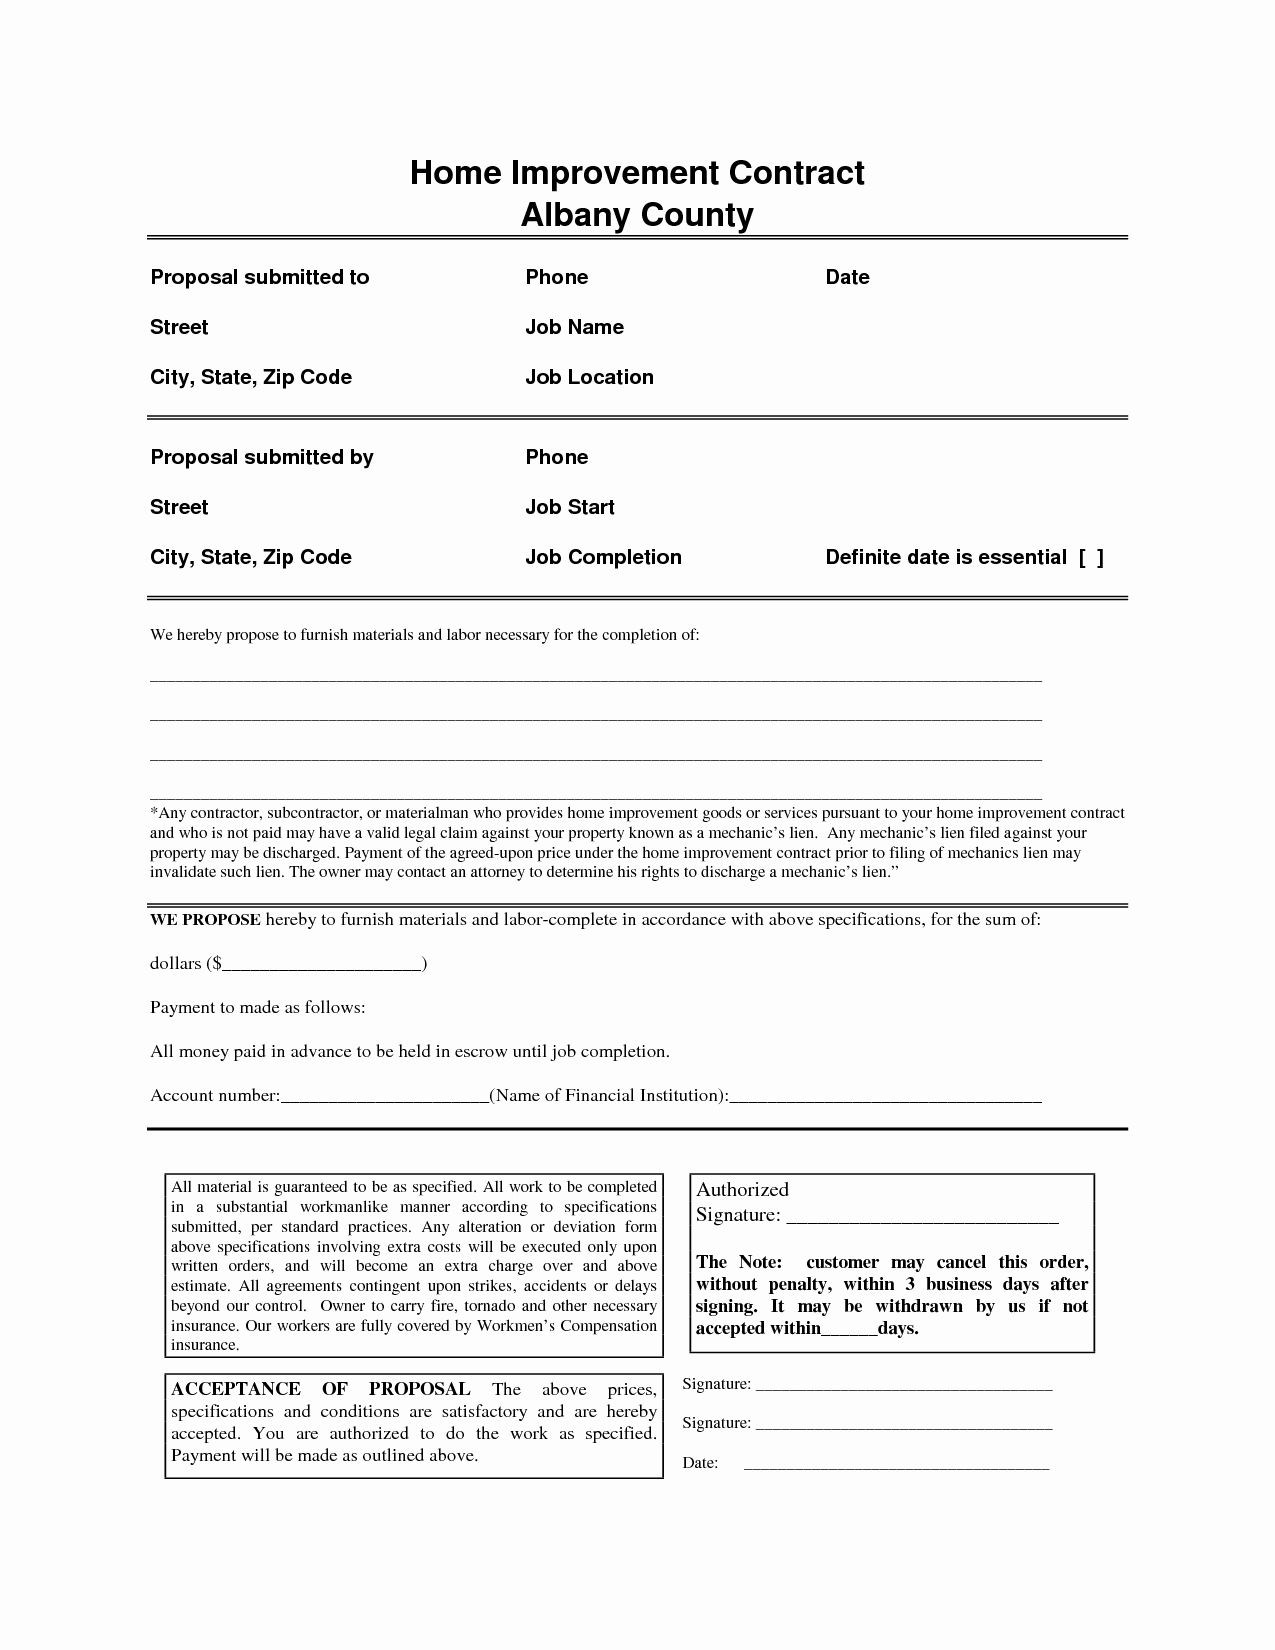 Home Remodeling Contract Template